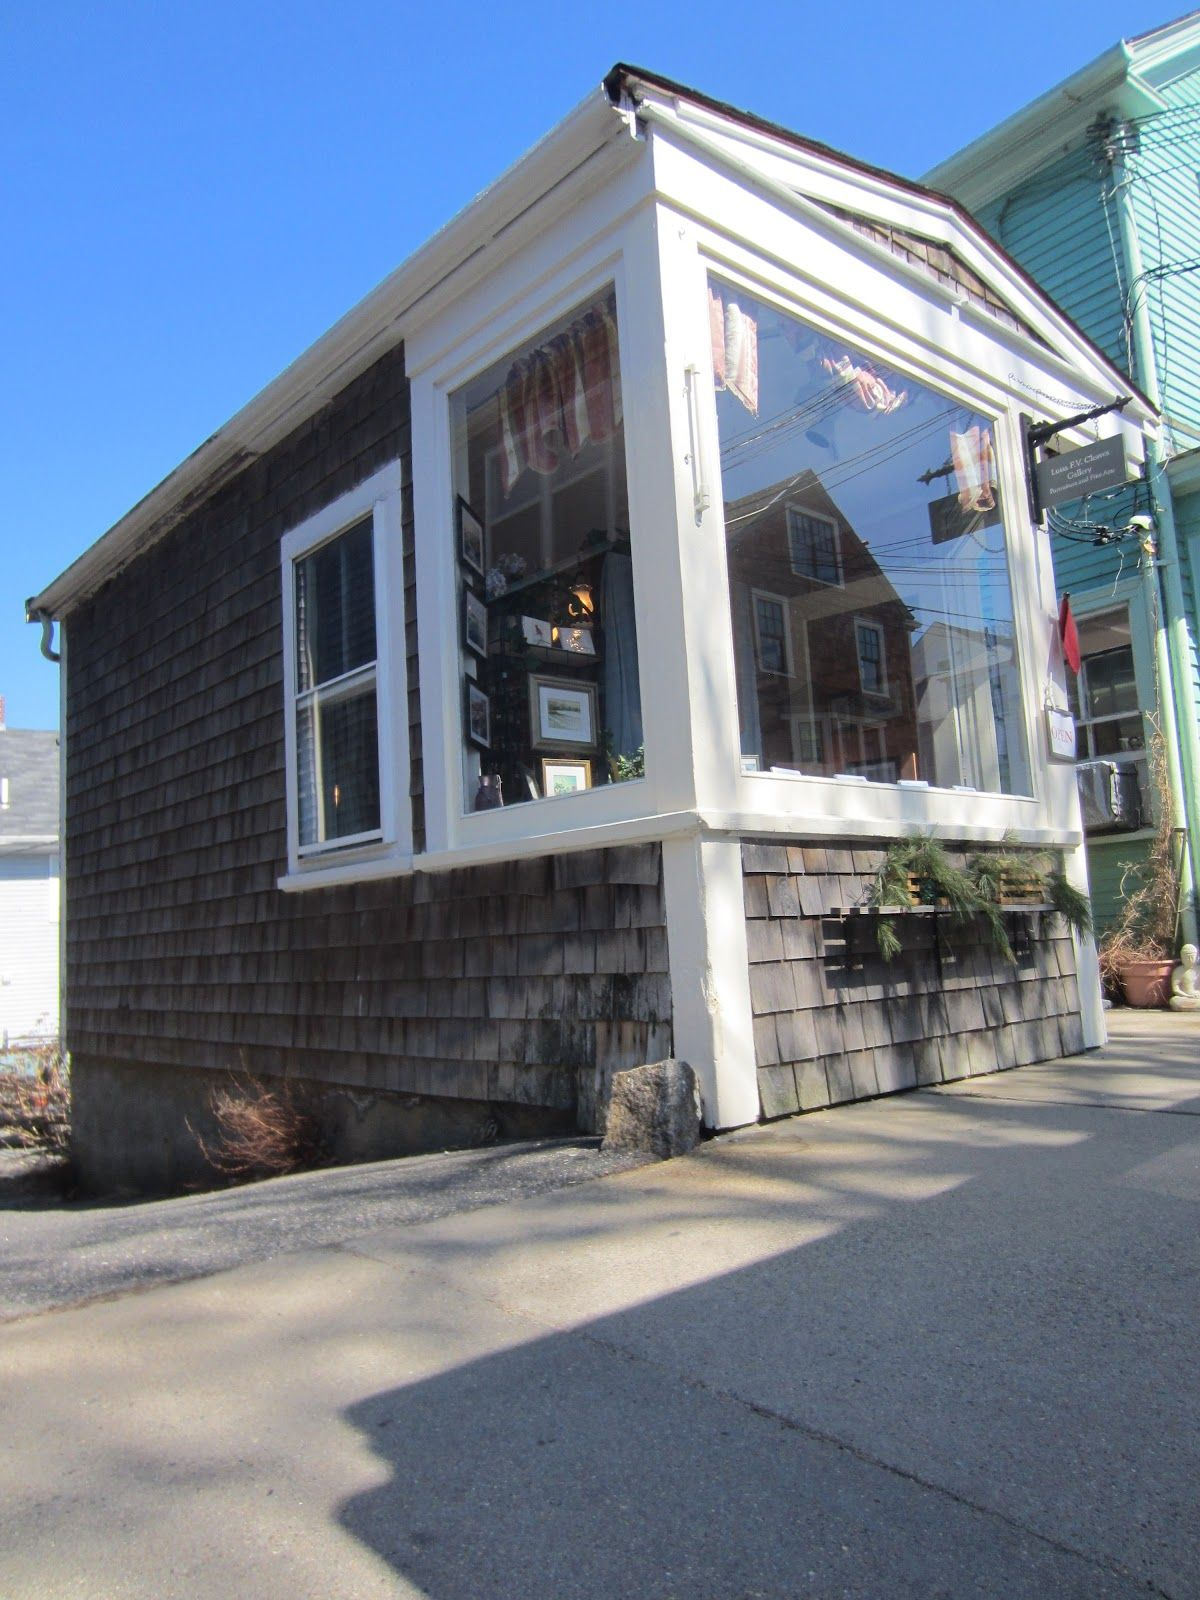 Ten Really Cool Tiny Houses In Rockport Ma A Small House Photo Gallery Tiny House Small House Small House Living